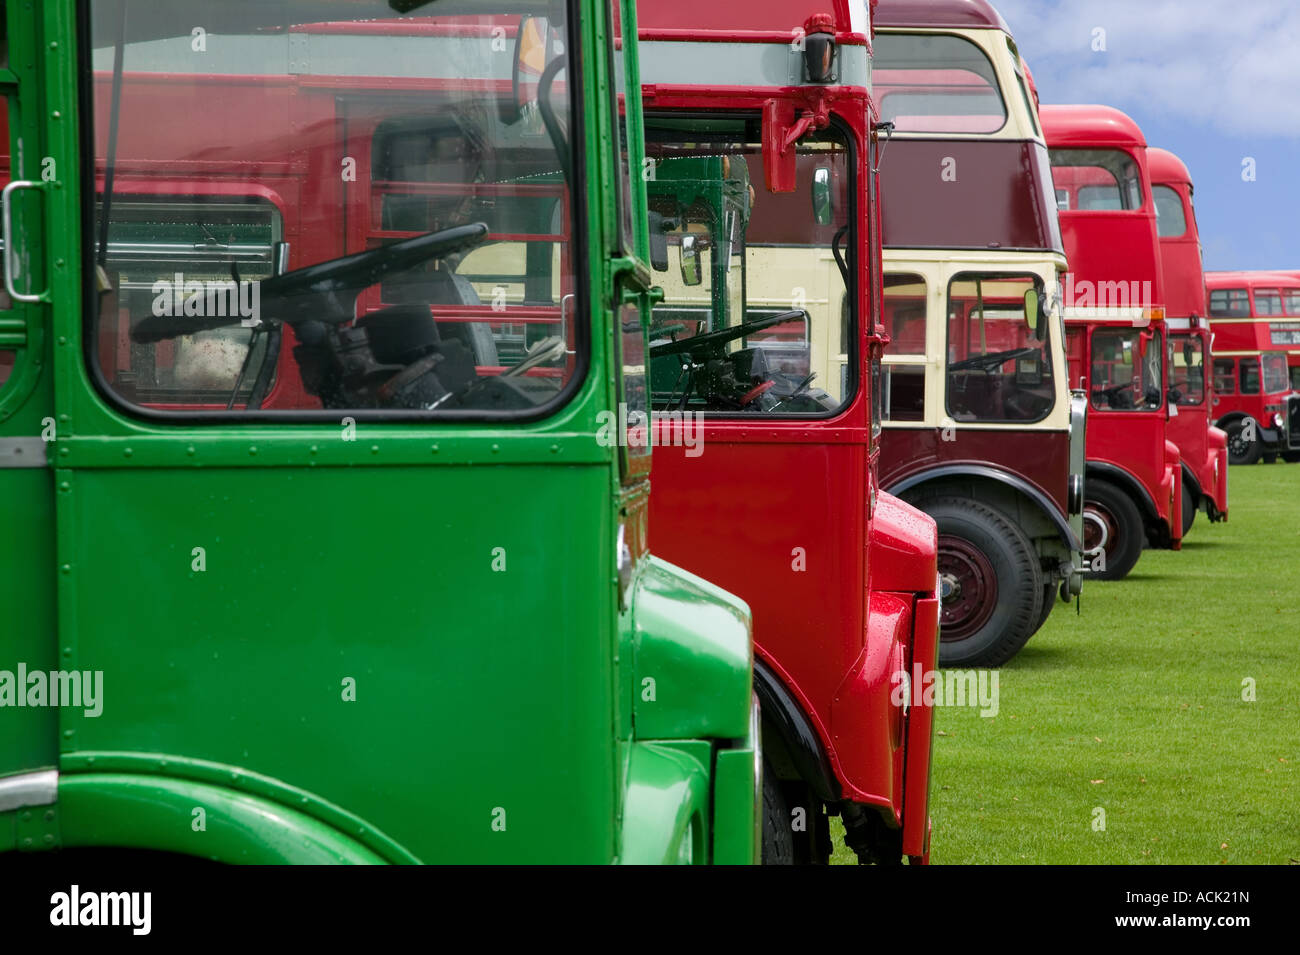 Vintage double decker buses in a row - Stock Image